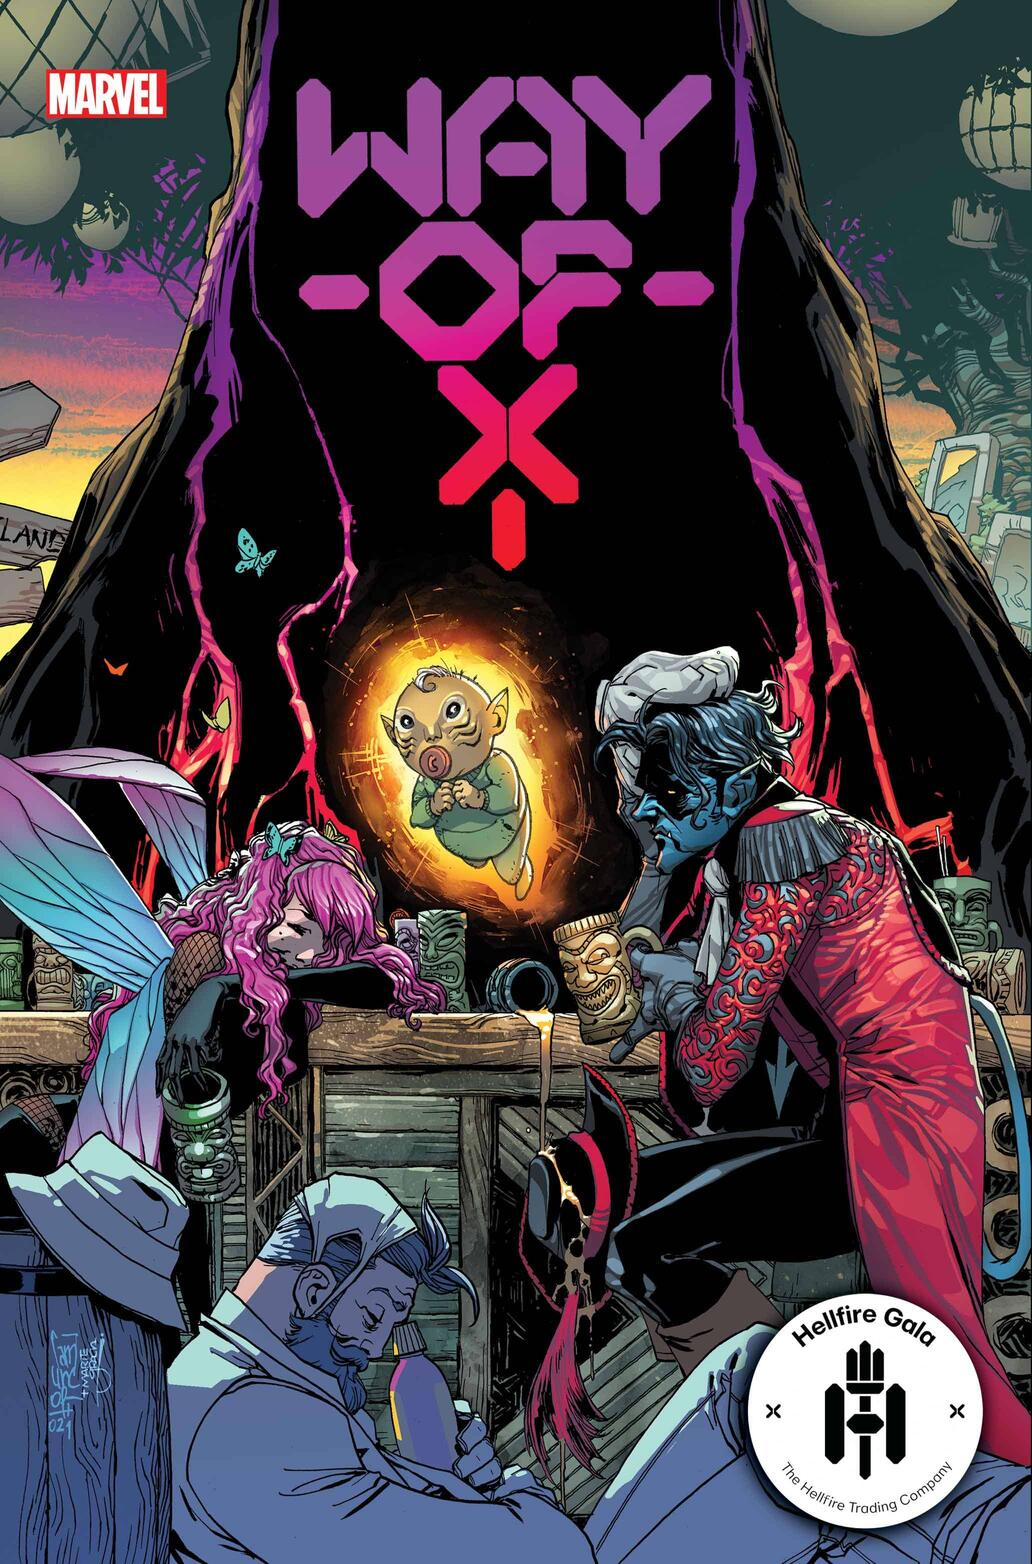 WAY OF X #3 cover by Giuseppe Camuncoli and Marte Gracia